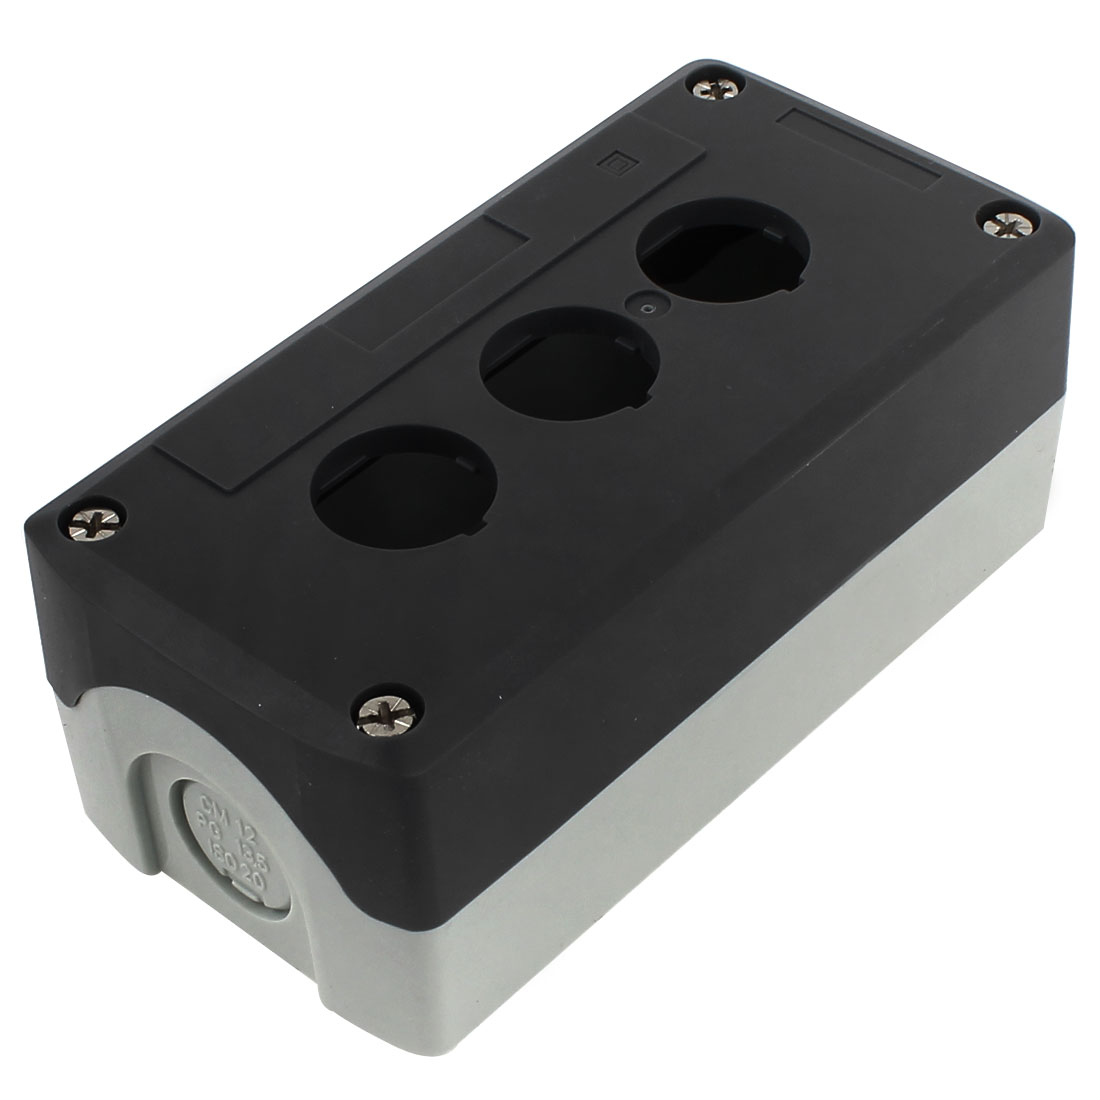 137mm x 68mm x 50mm Dustproof IP65 Plastic 3 Button Hole Junction Box Case